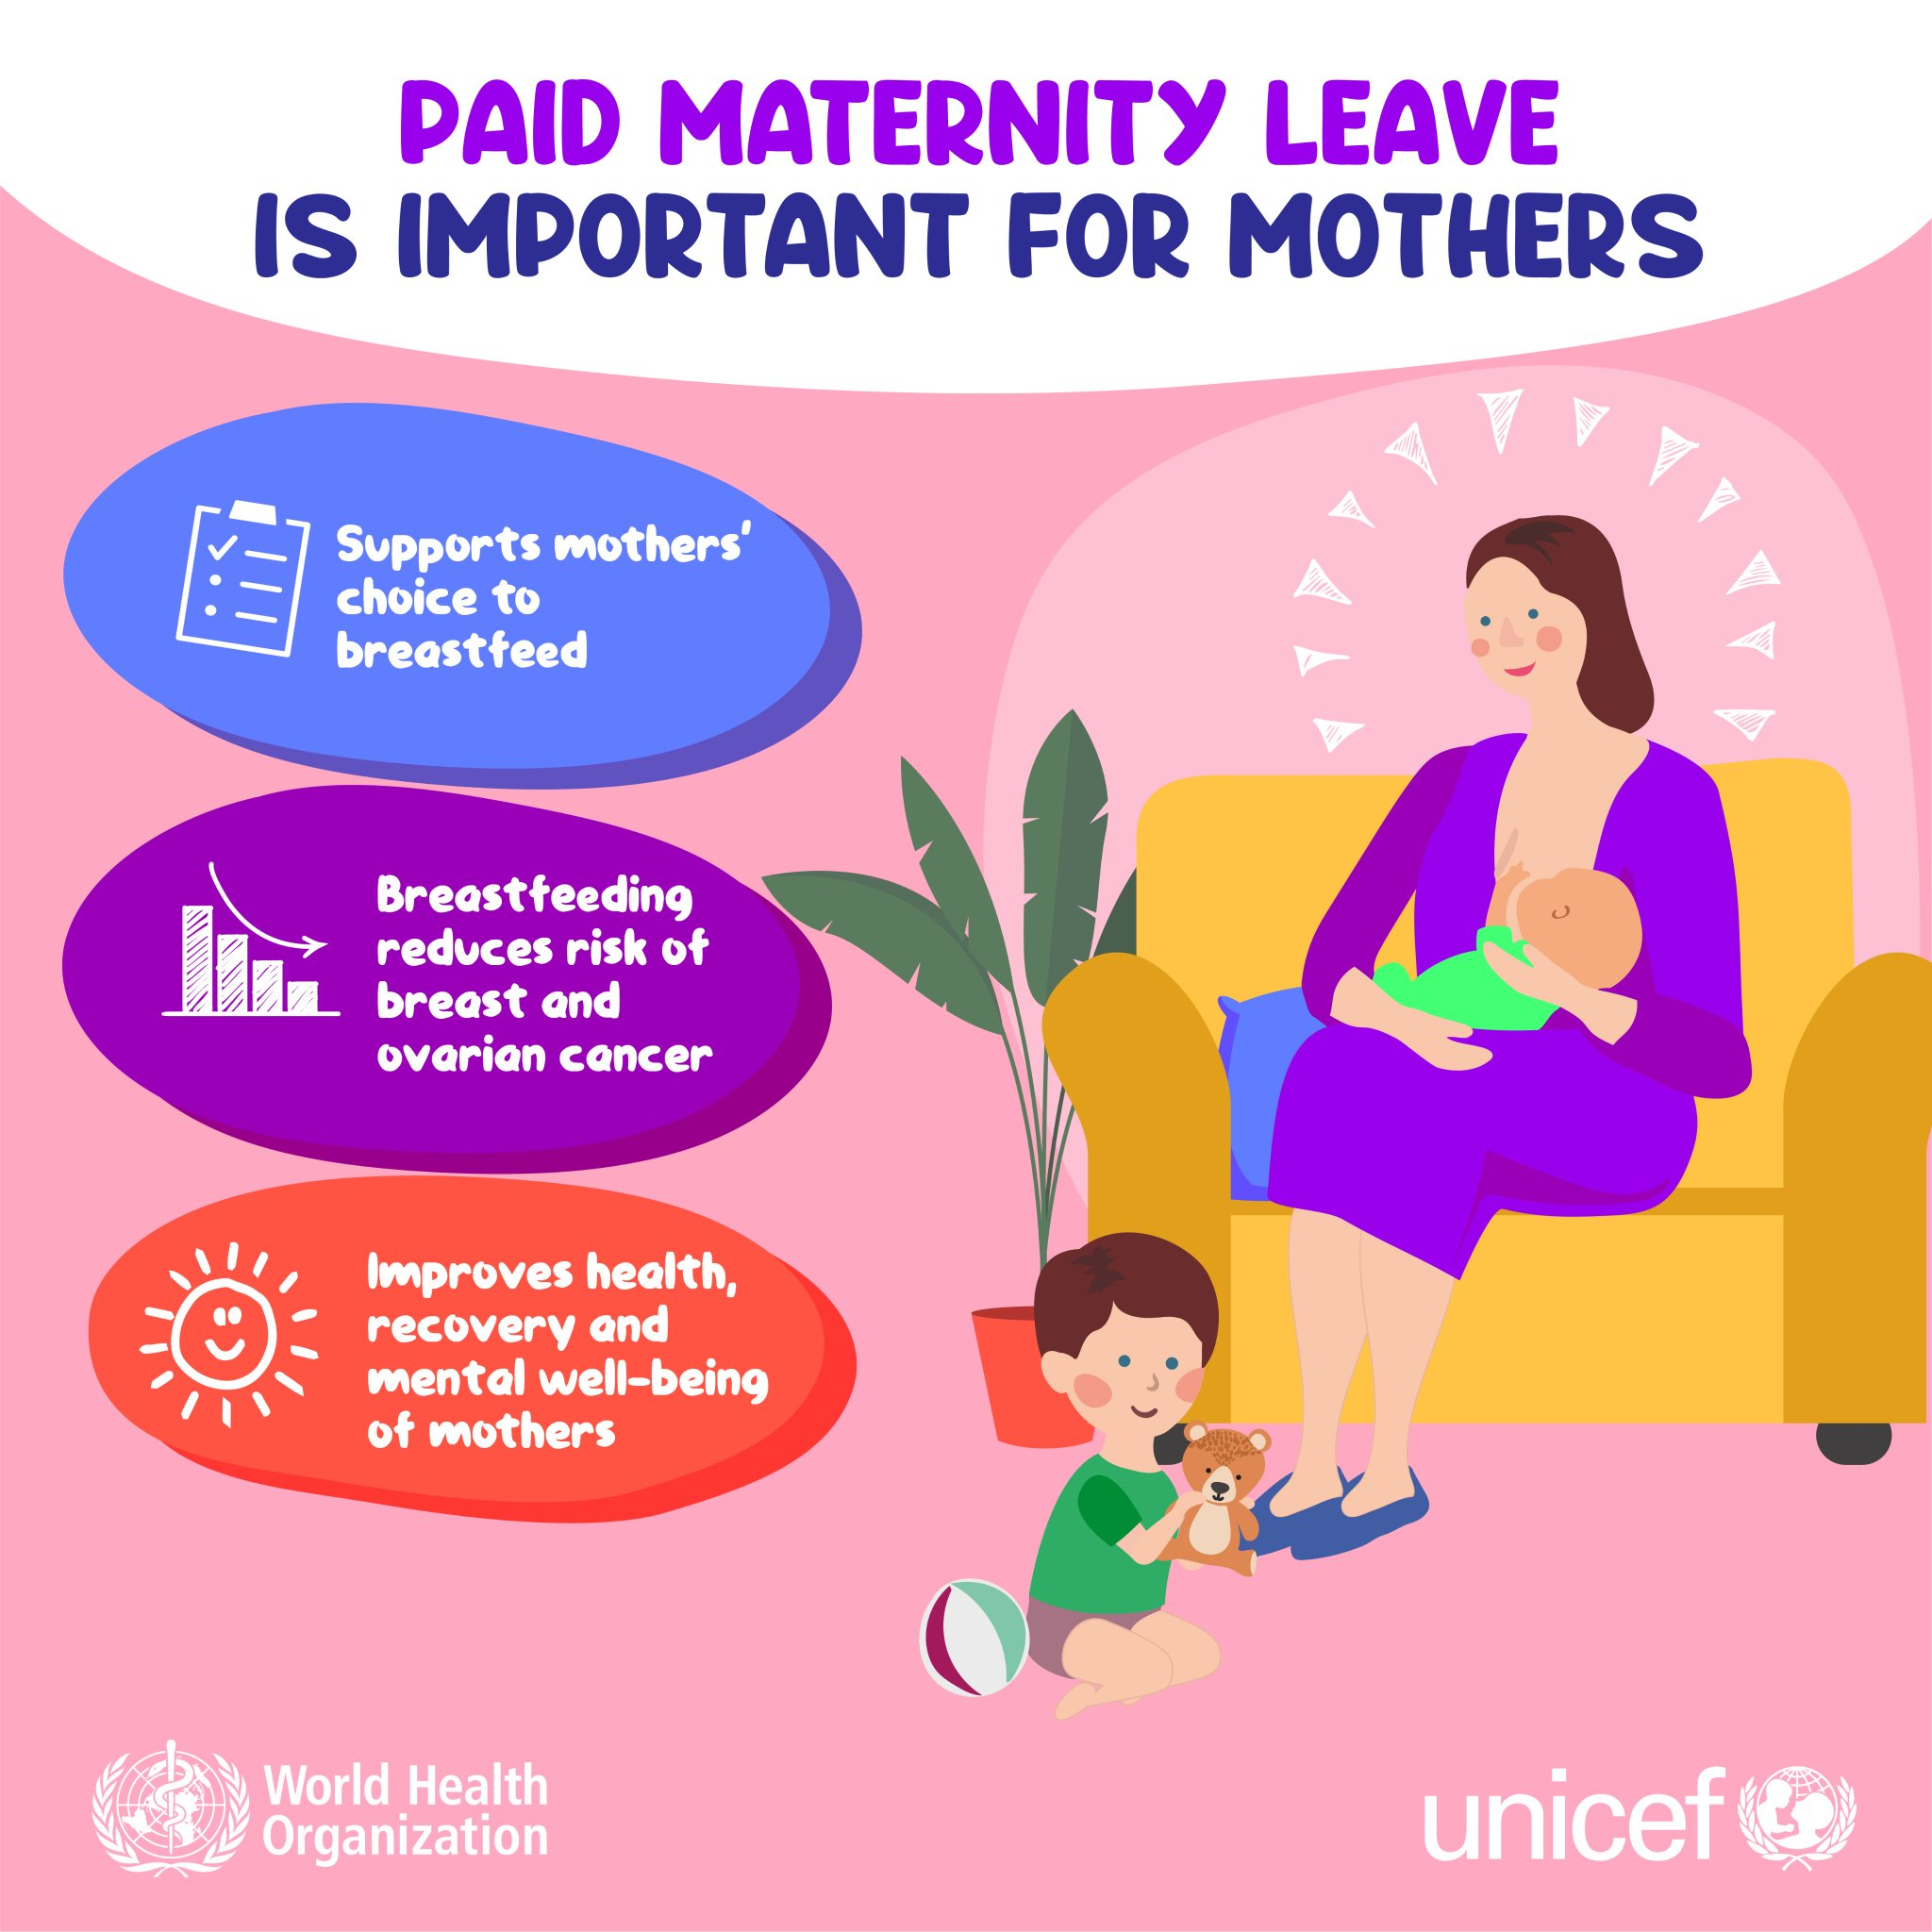 Who Emro On Twitter Paid Maternity Leave Is Important For Mothers As It Supports Mothers Choice To Breastfeed Breastfeeding Reduces Risk Of Breast And Ovarian Cancer Improves Health Recovery